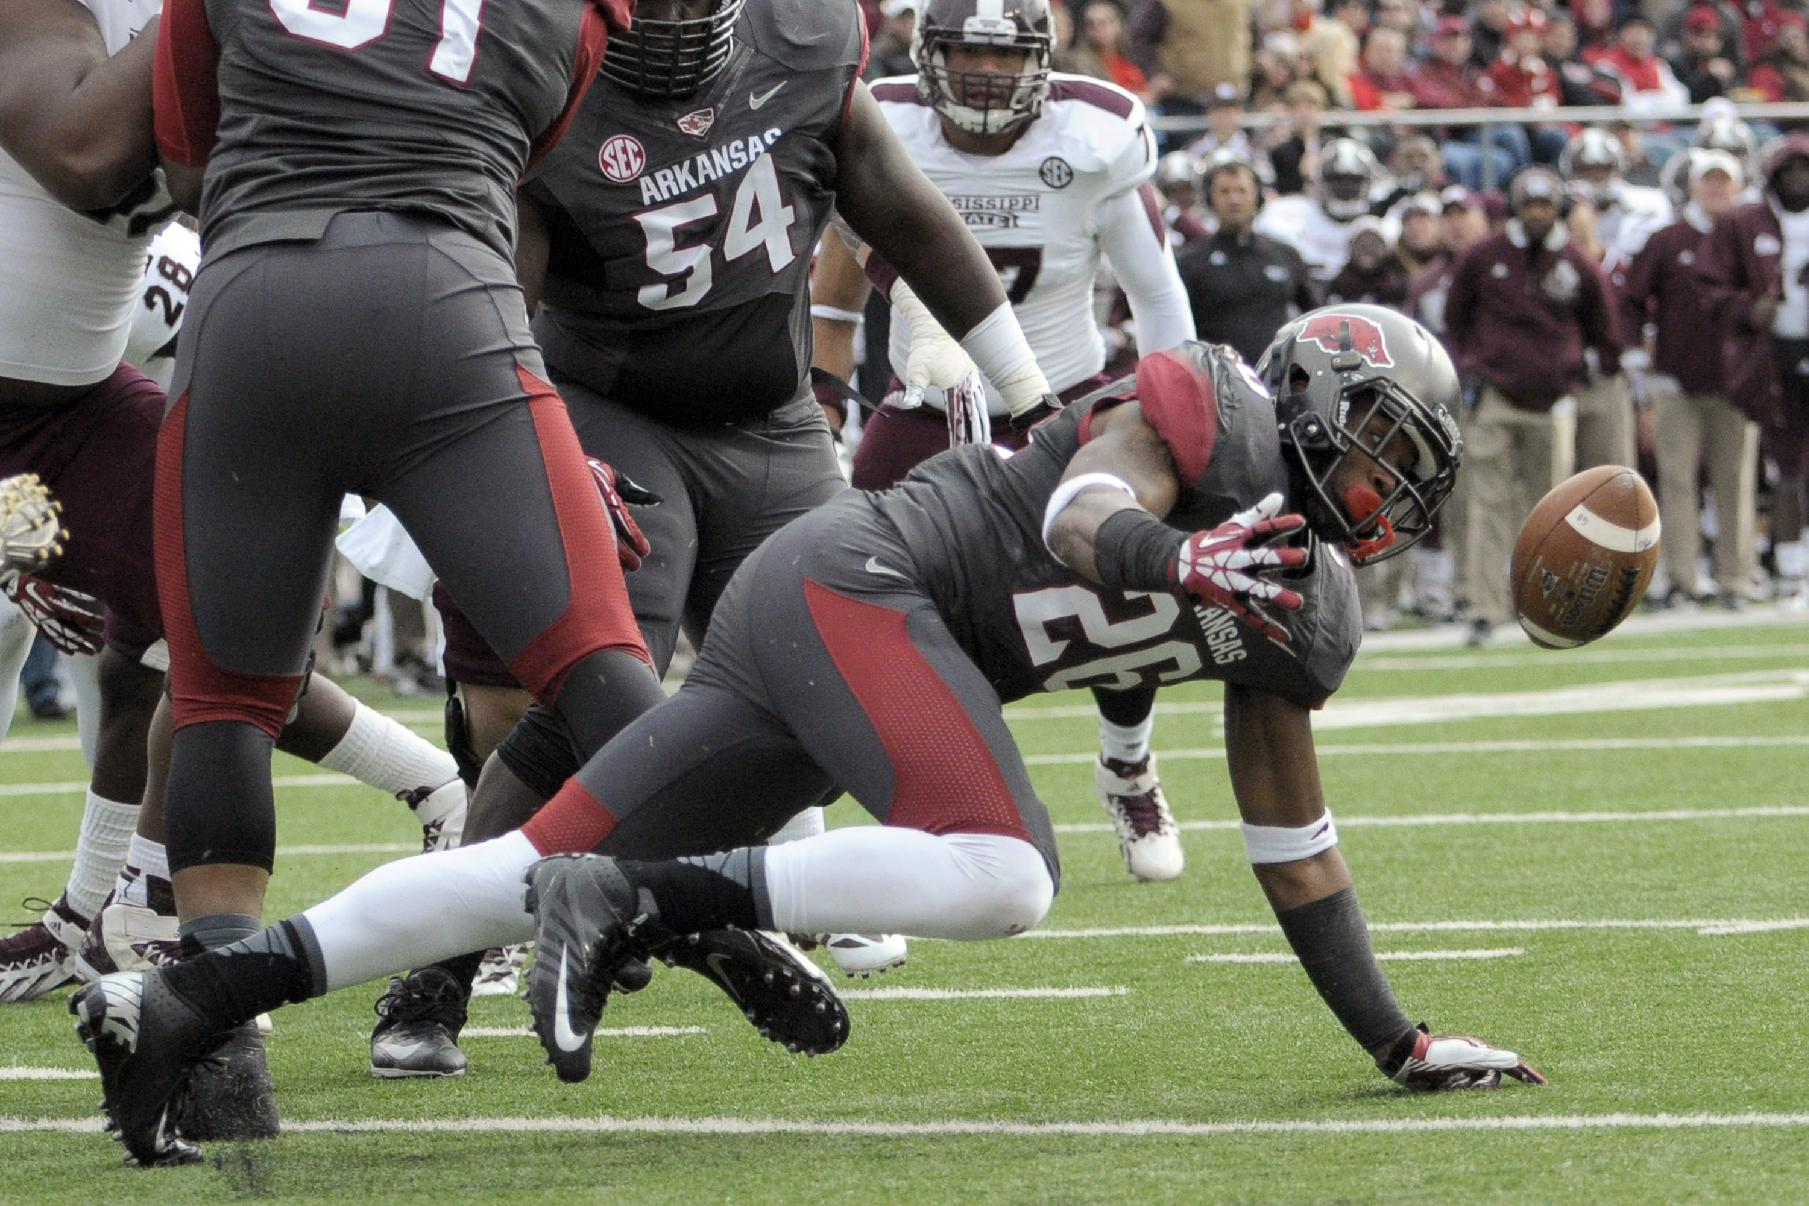 Arkansas safety Rohan Gaines recovers a Mississippi State fumble at the one-yard line in the second quarter of an NCAA college football game in Little Rock, Ark., Saturday, Nov. 23, 2013